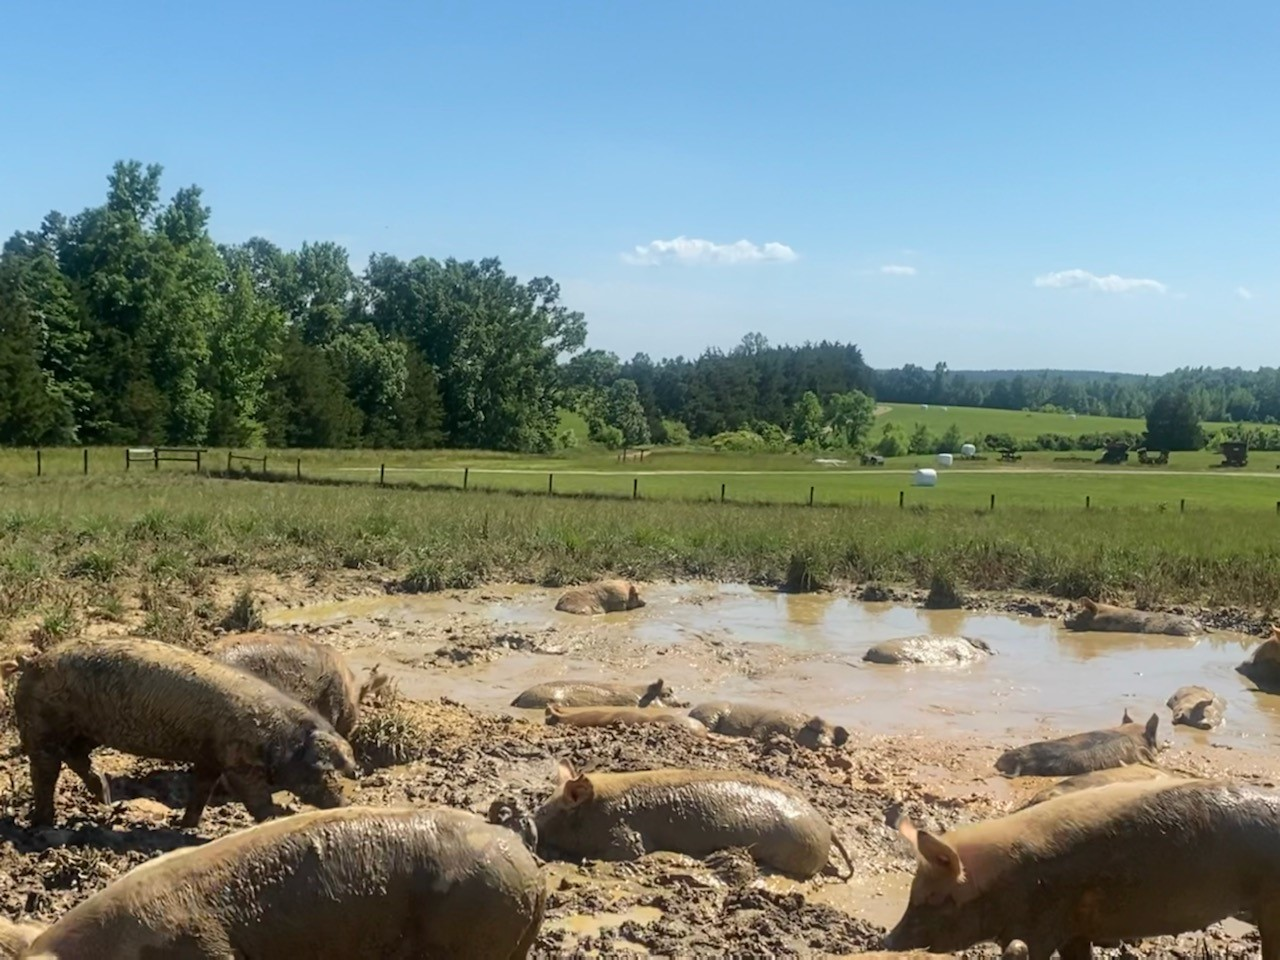 VA farm pigs wallowing in the mud hole